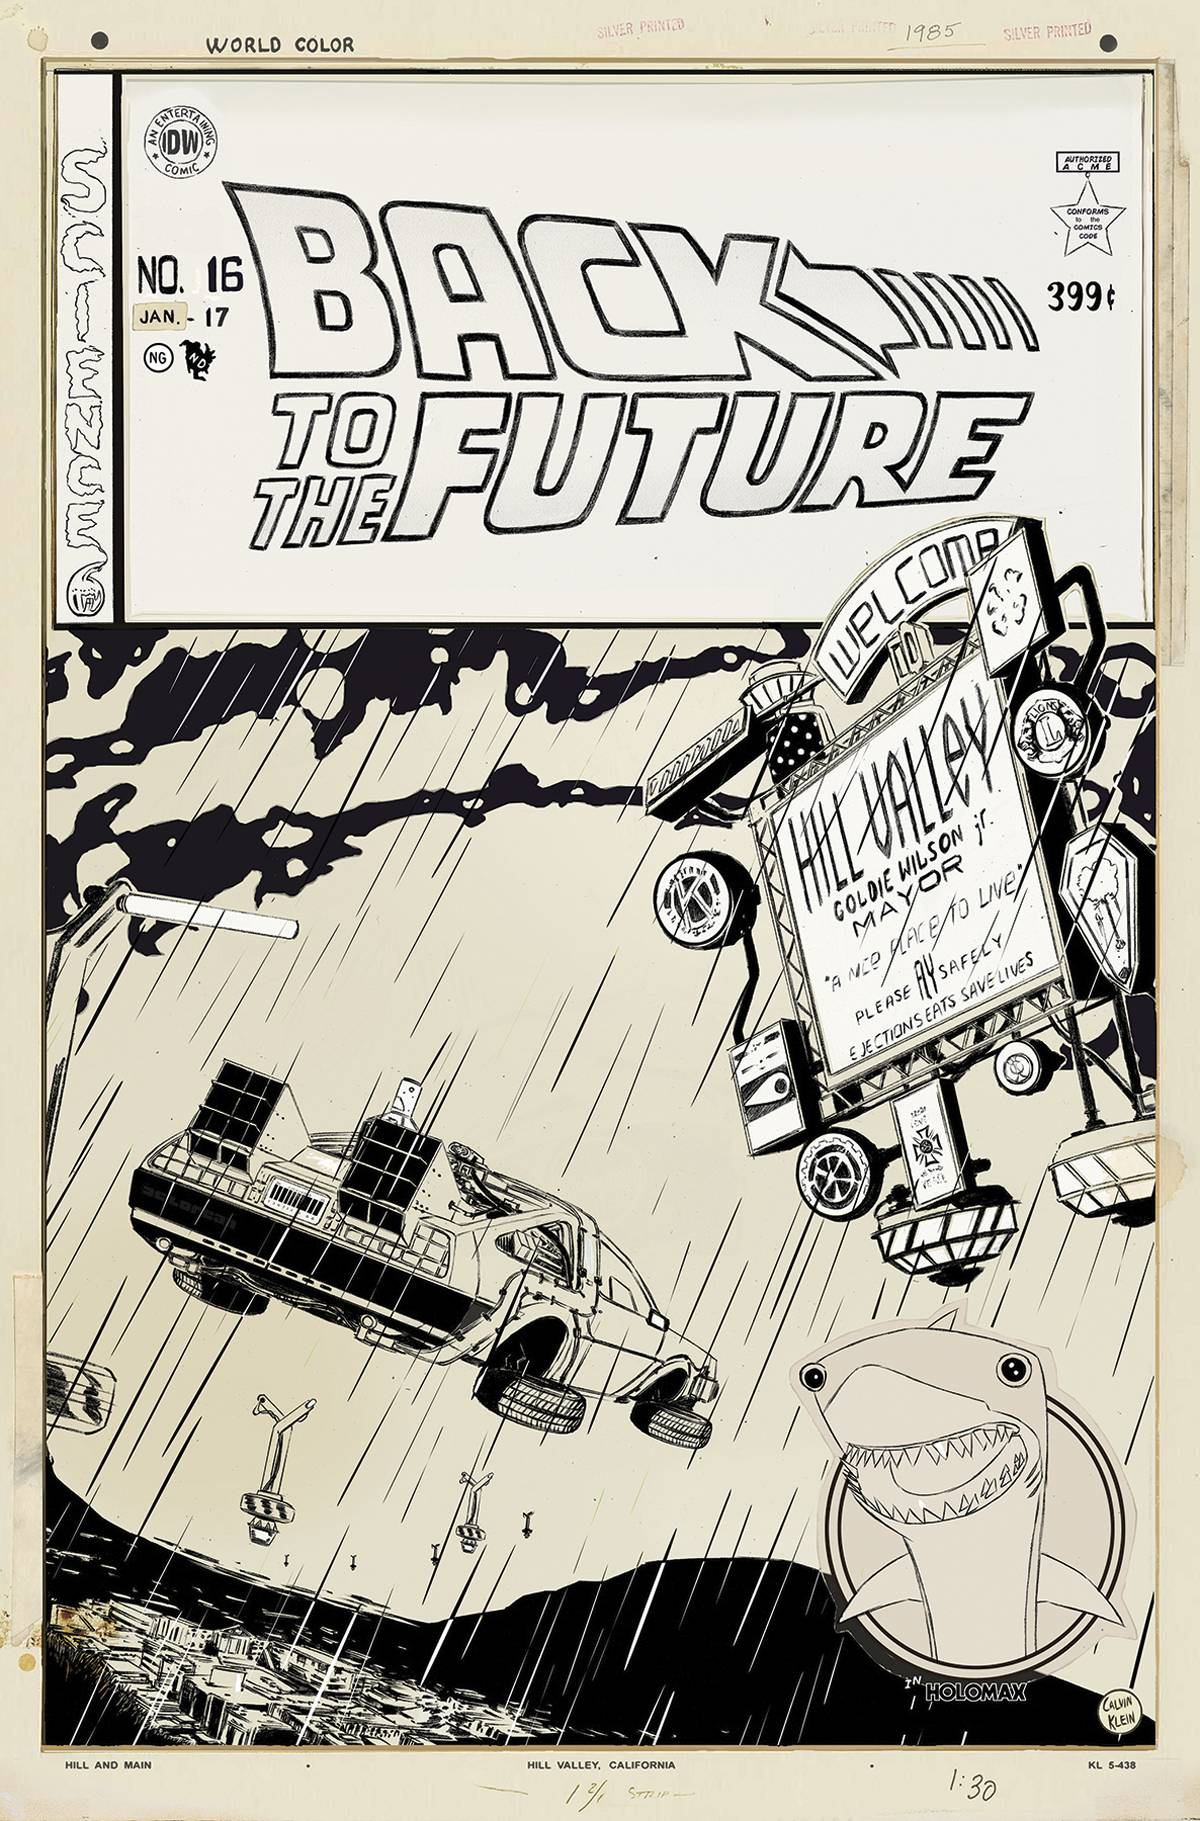 BACK TO THE FUTURE #16 ARTIST ED VAR